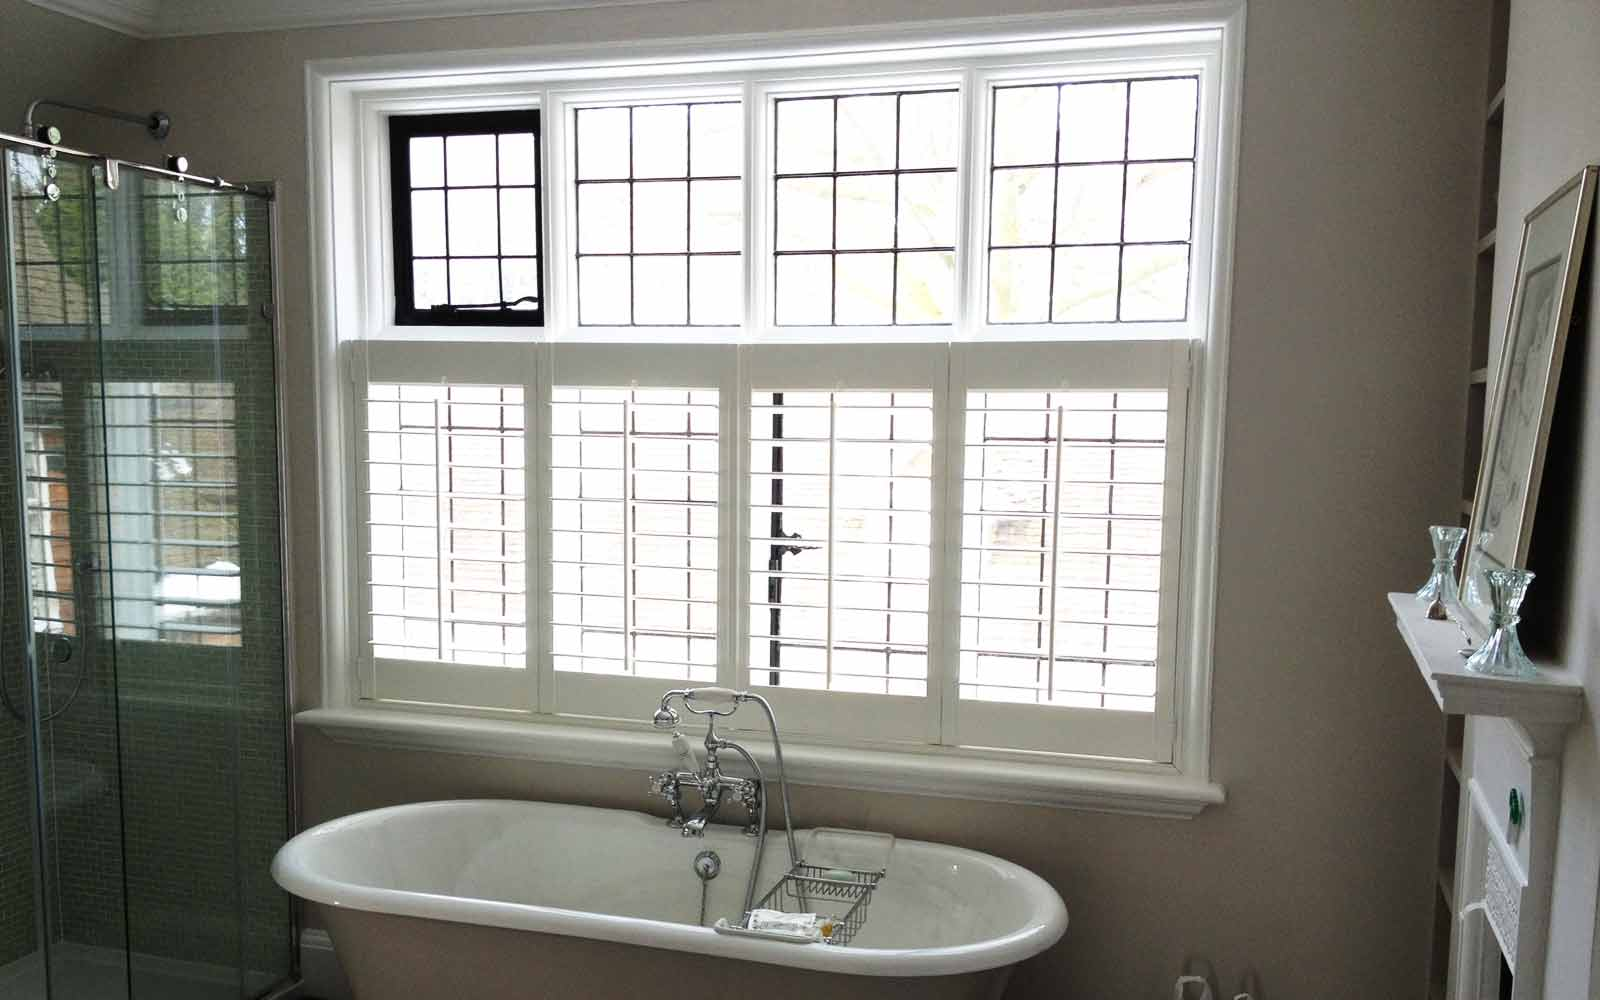 plantation shutters cafe style in a bathroom